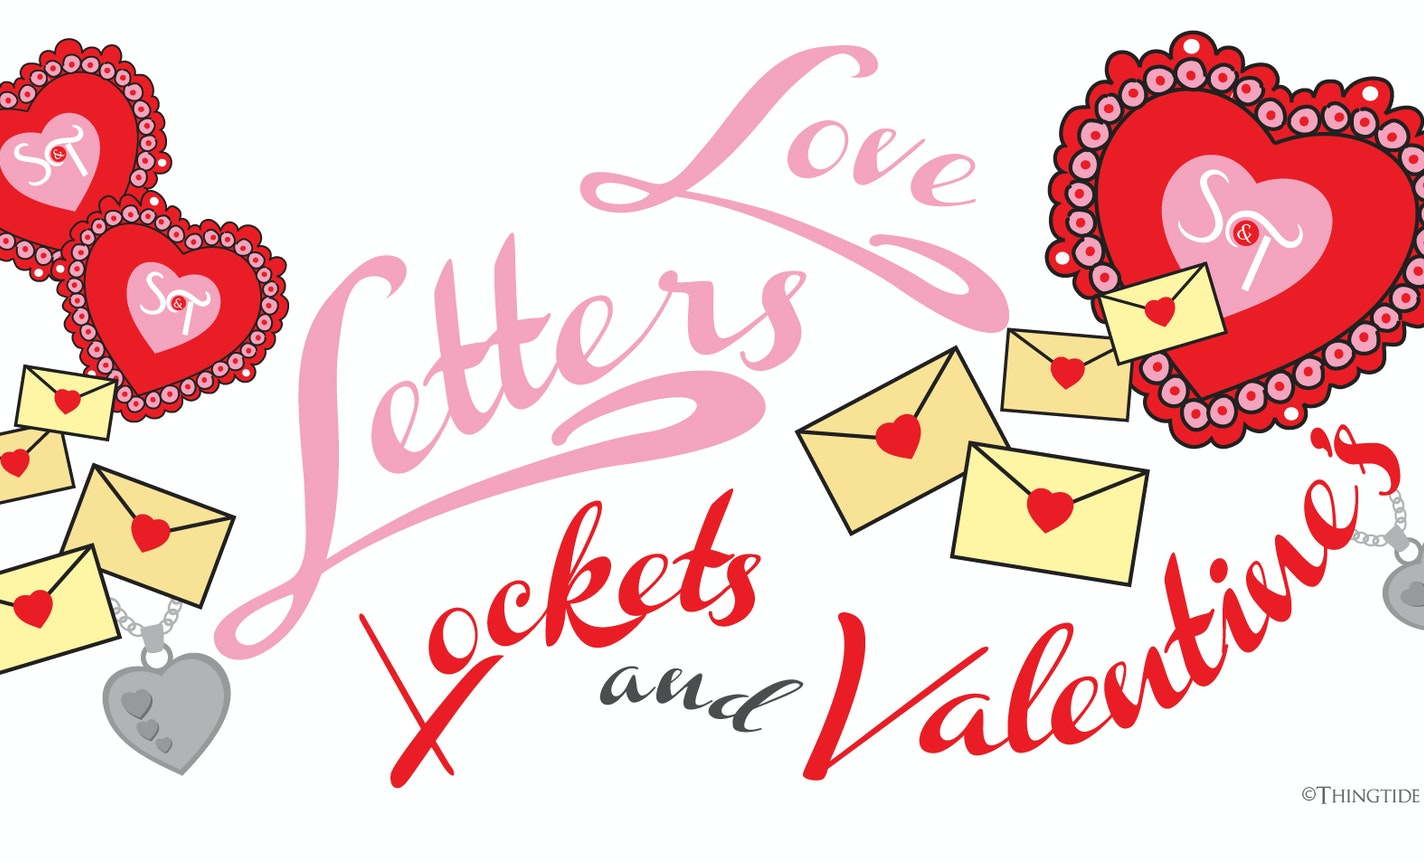 Show & Tale: Love Letters, Lockets & Valentines